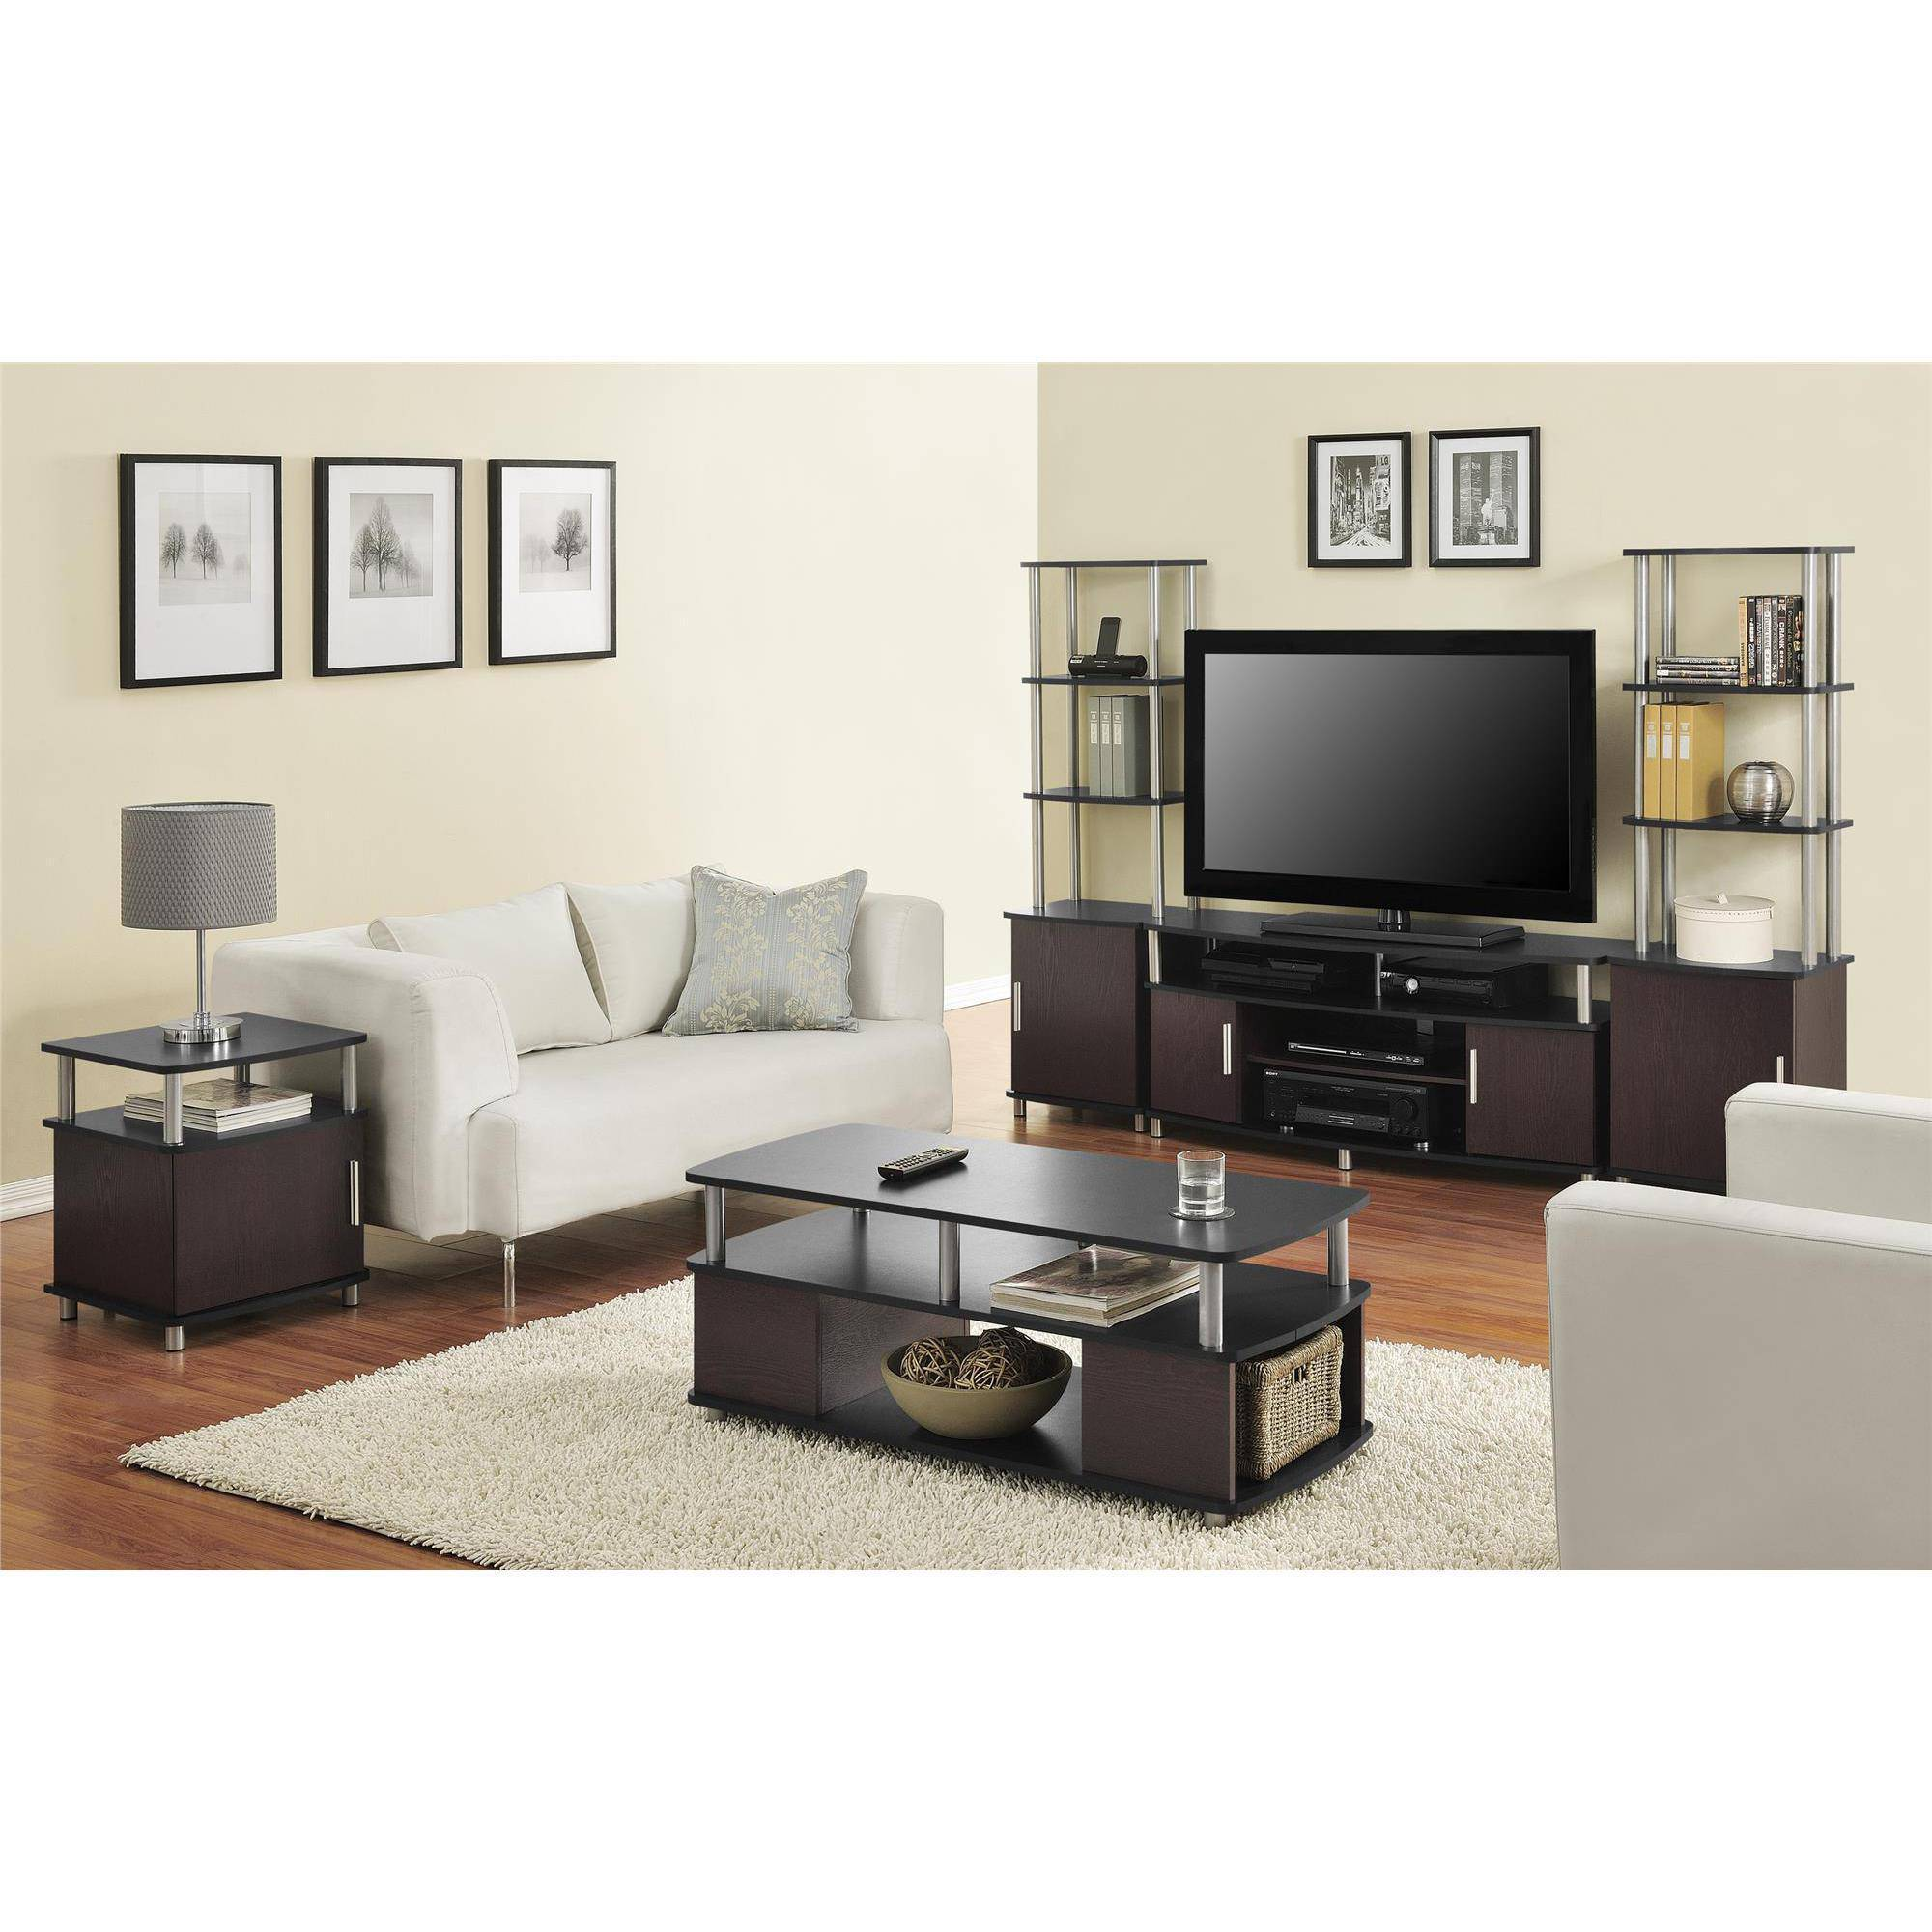 Altra Carson Living Room Furniture Black Cherry Finish Open